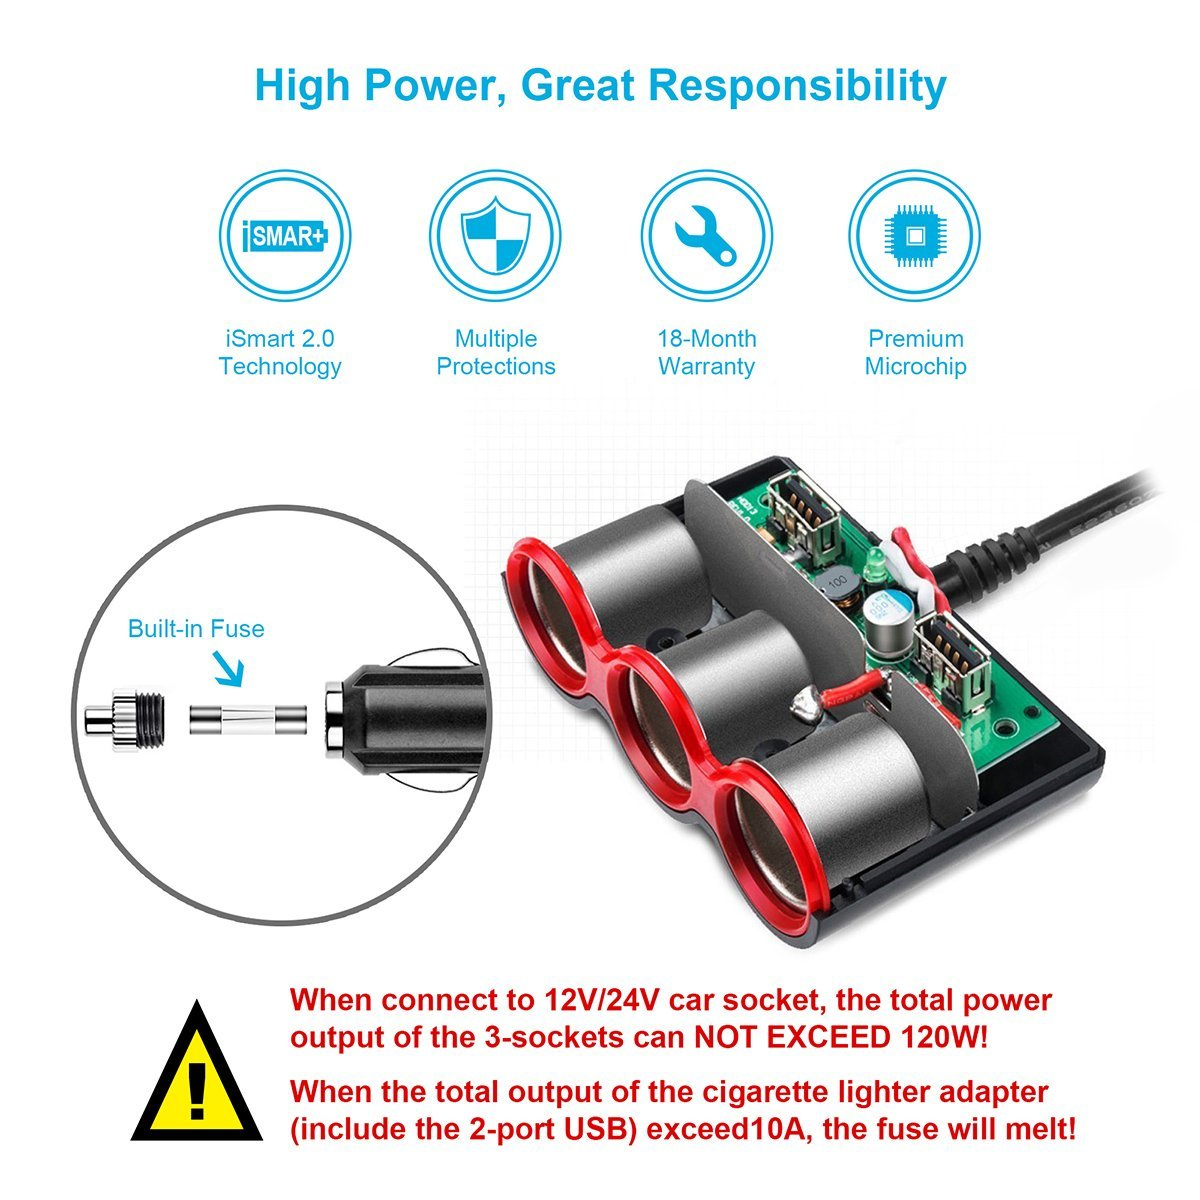 Usb Car Cigarette Lighter Splitter Adapter 120w 3 Socket 4a Dual Charger Outlet Multi Functions For Iphone Ipad Samsung In Chargers From